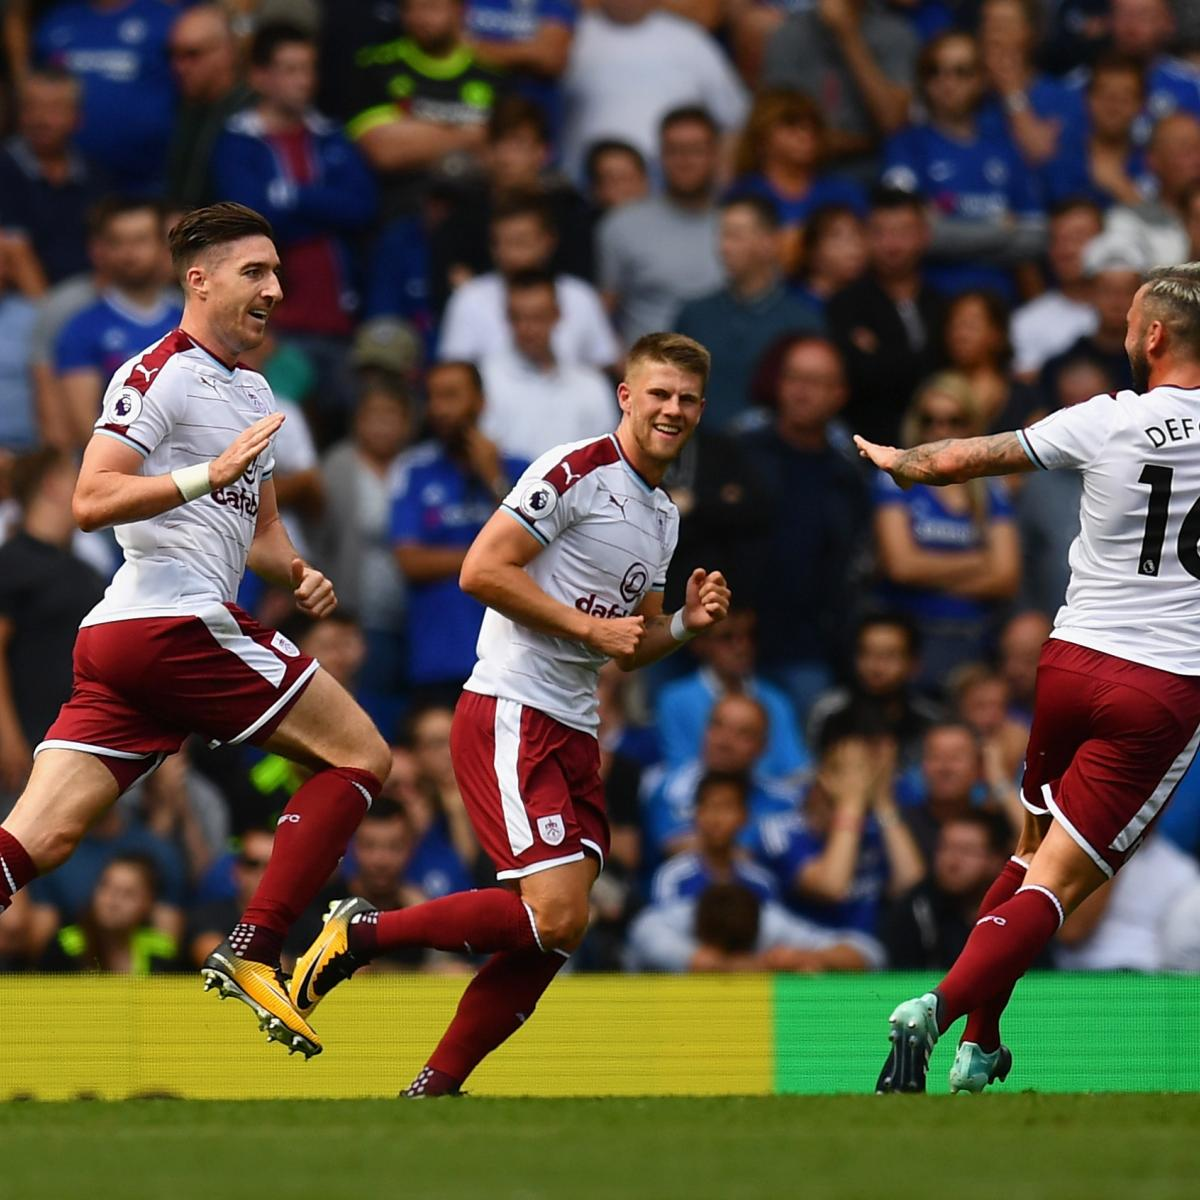 Sam Vokes, Burnley Hold off 9-Man Chelsea in Wild 3-2 Win